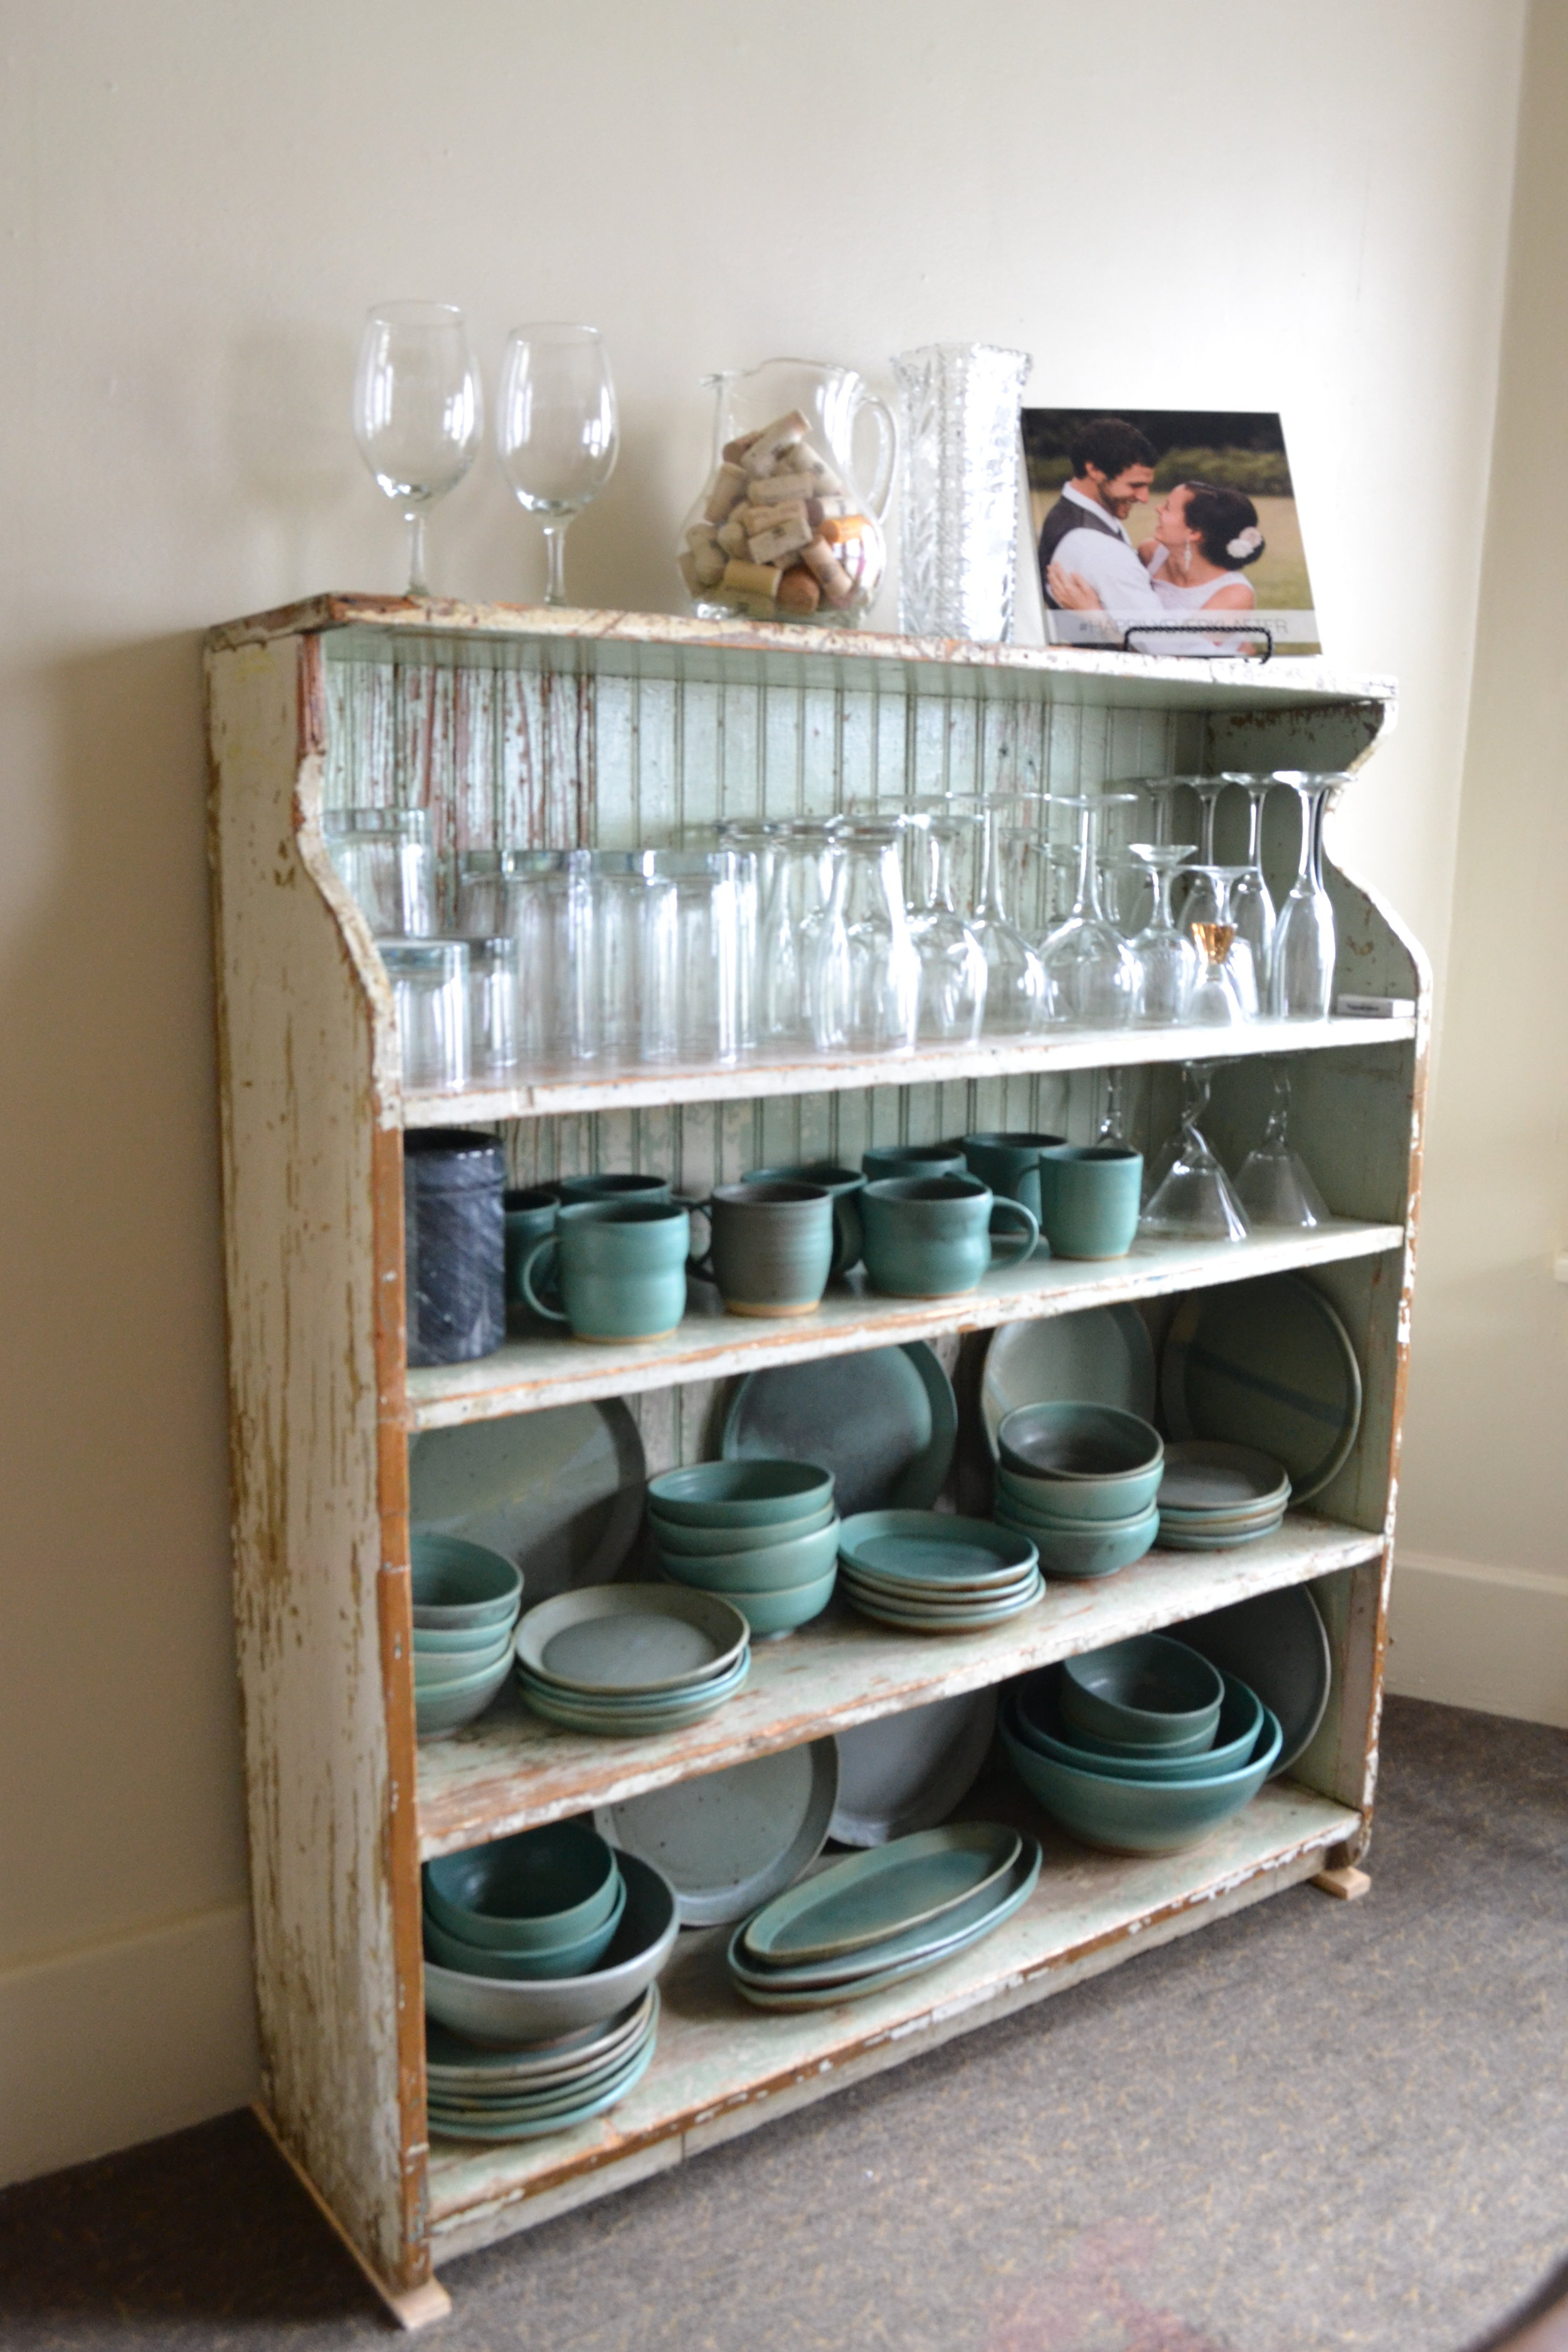 When there is not enough room in your cabinets, dishes and glassware can be displayed.